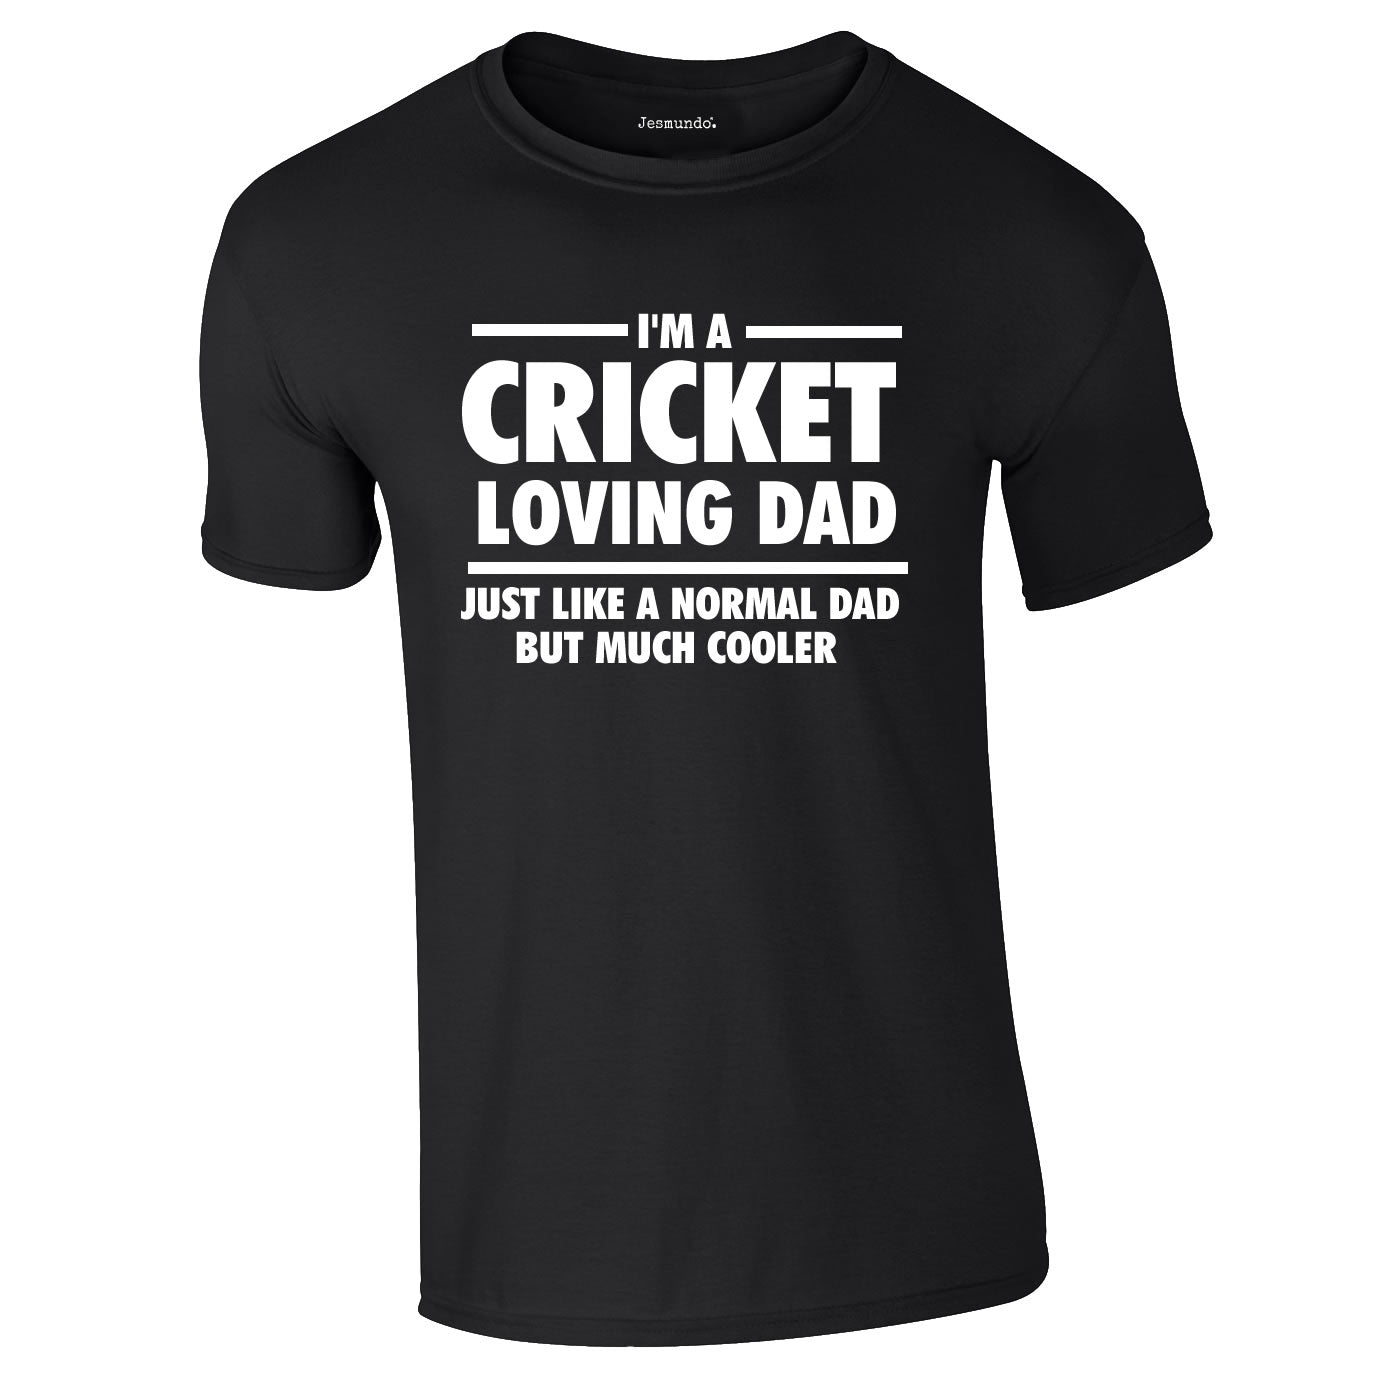 I'm a cricket loving dad, just like a normal dad but much cooler t shirt